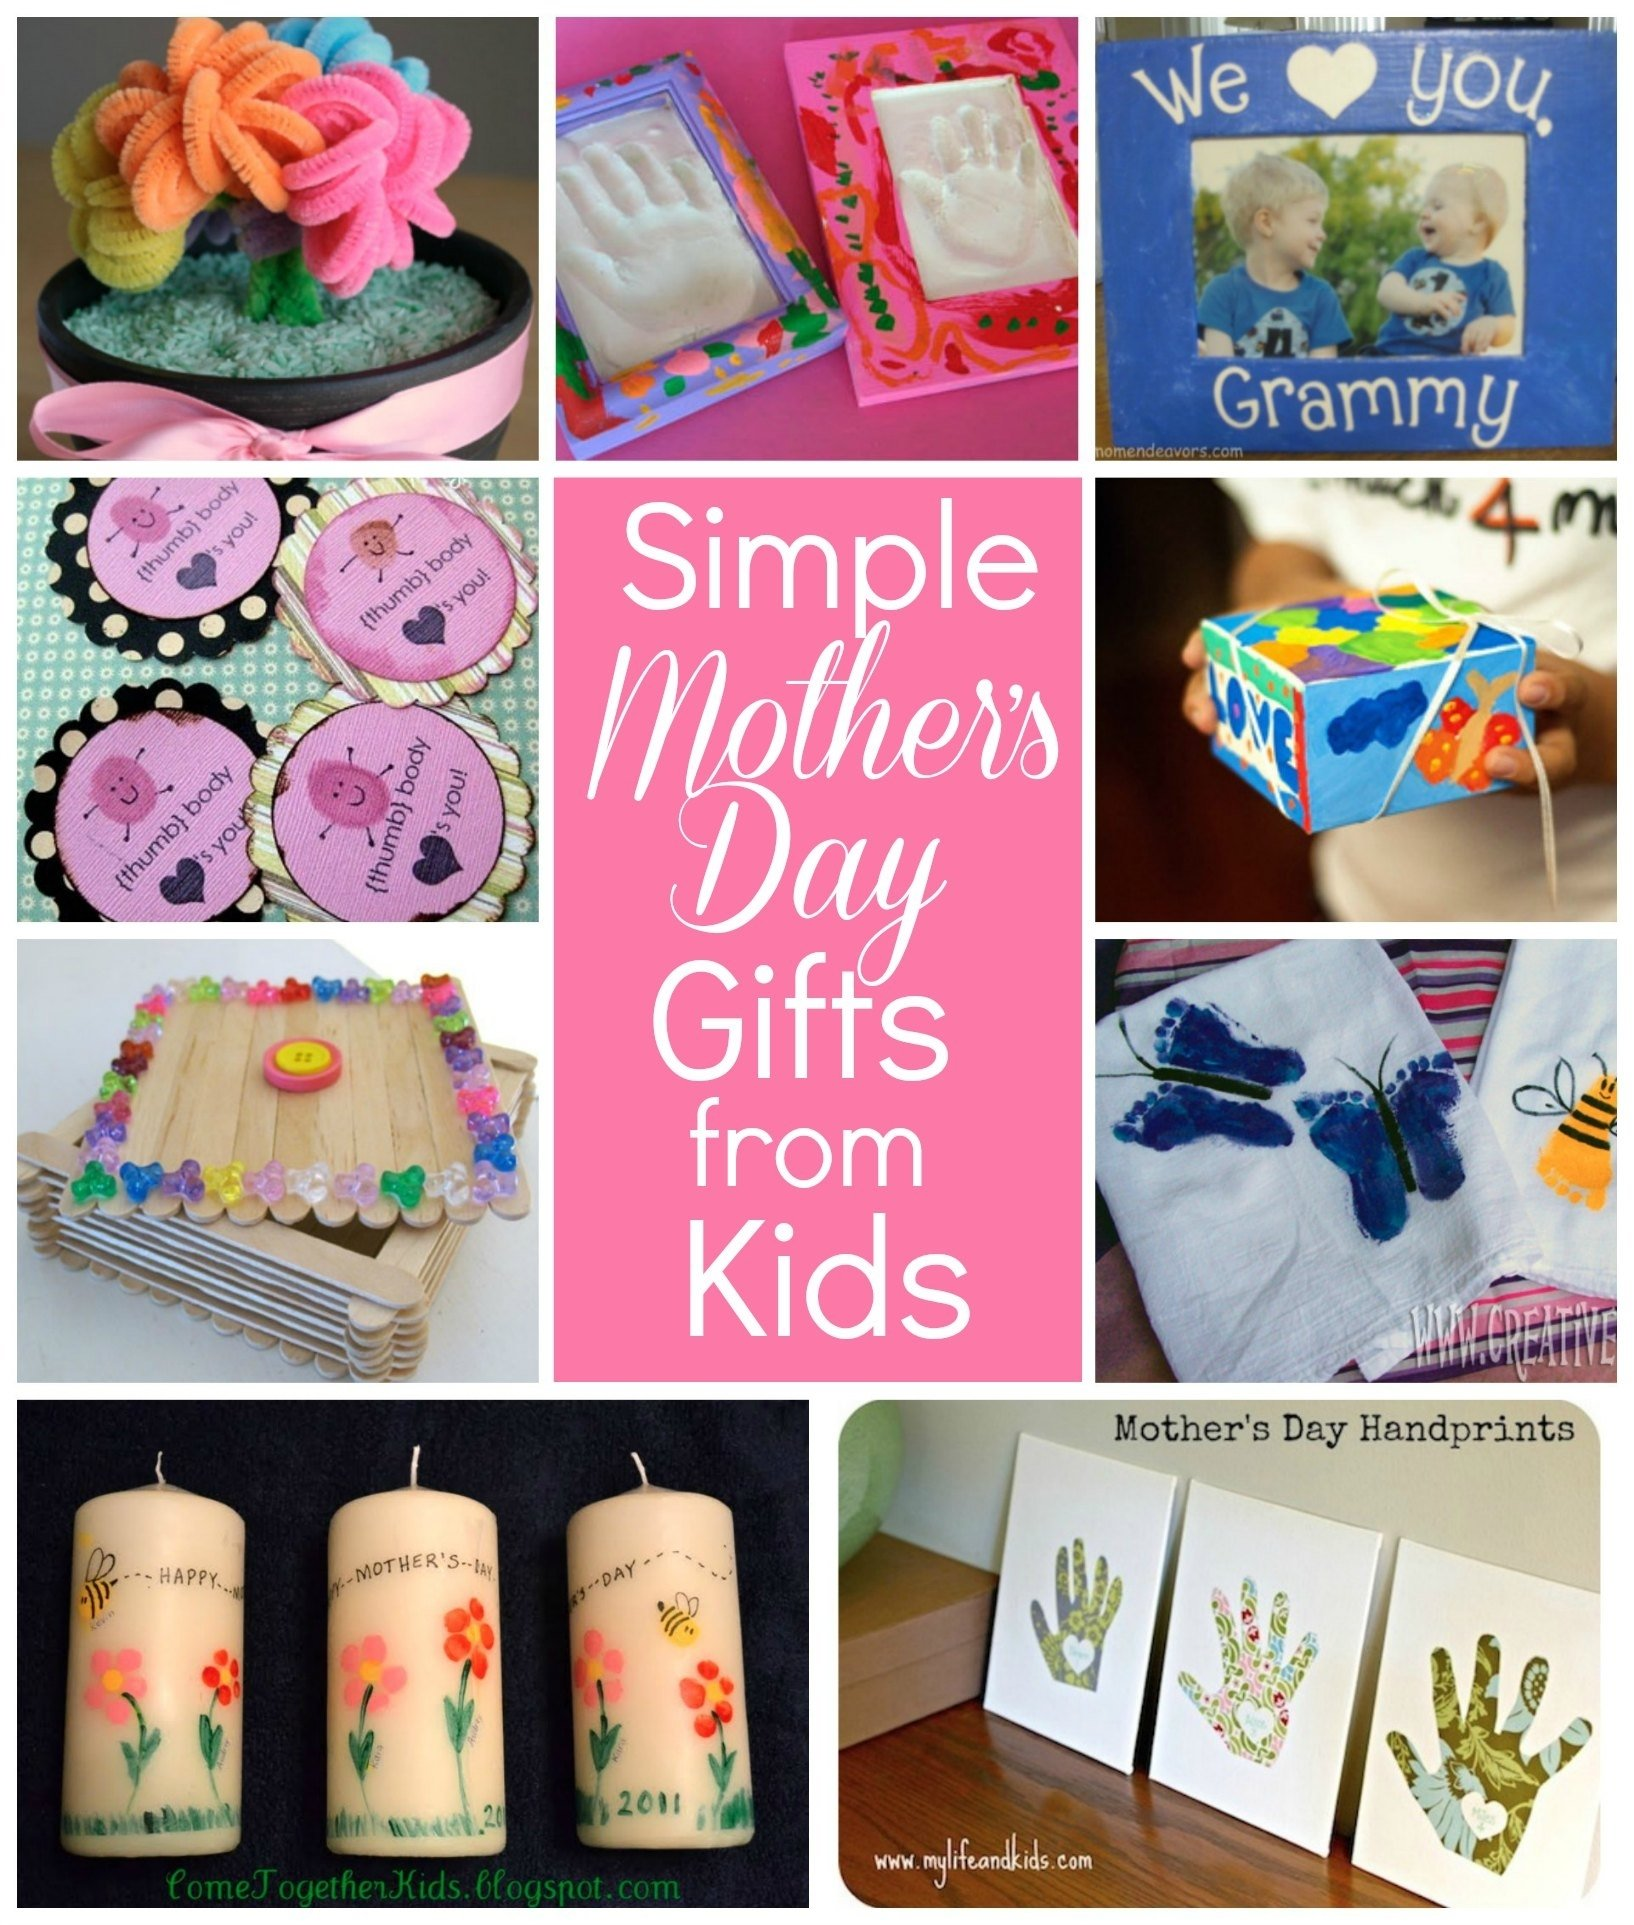 10 Cute Good Mothers Day Gifts Ideas simple mothers day gift ideas for grandma flower pot photo flowers 13 2020